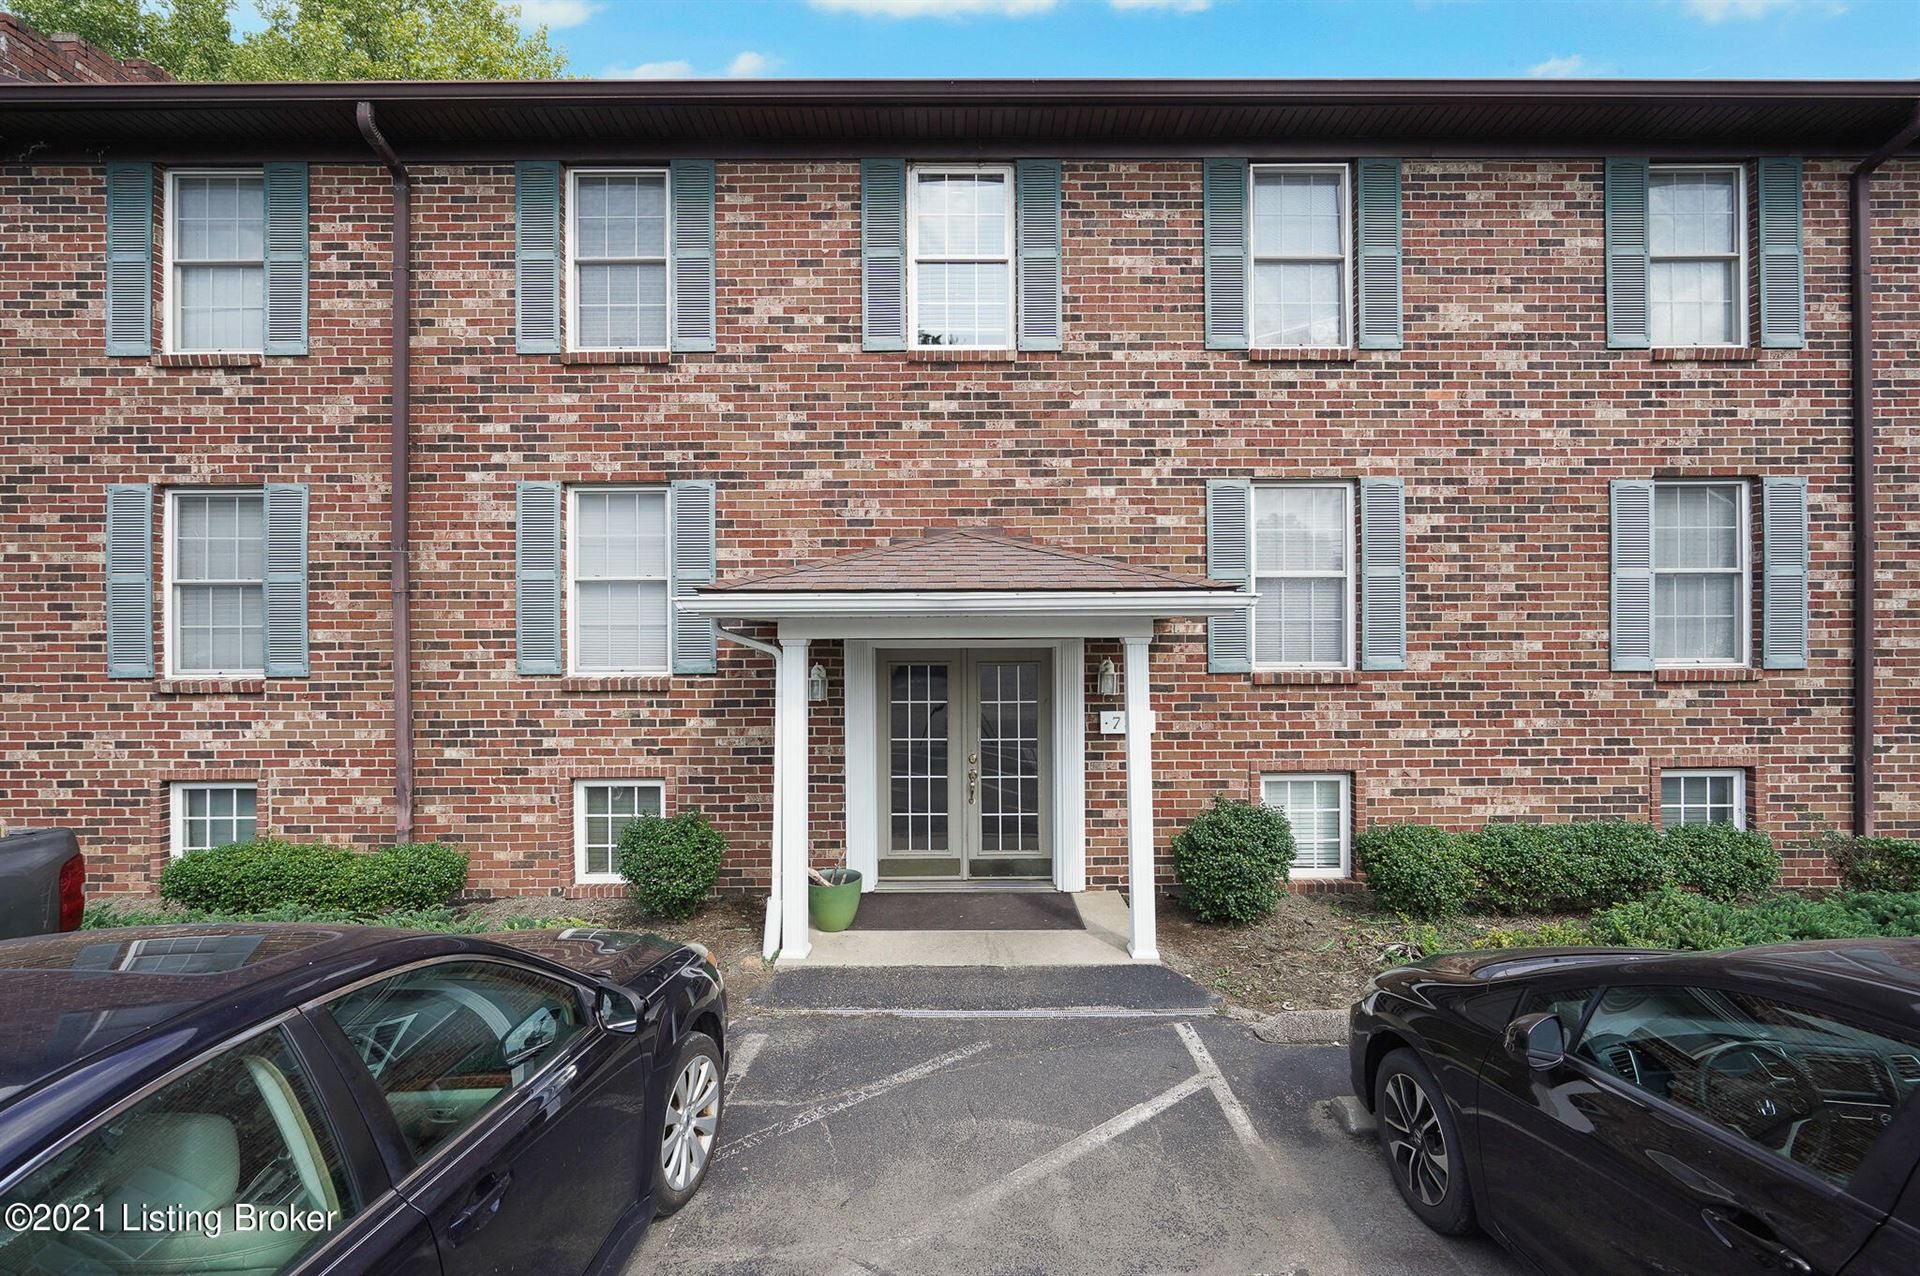 Photo for 737 N Hite Ave #3, Louisville, KY 40206 (MLS # 1596274)